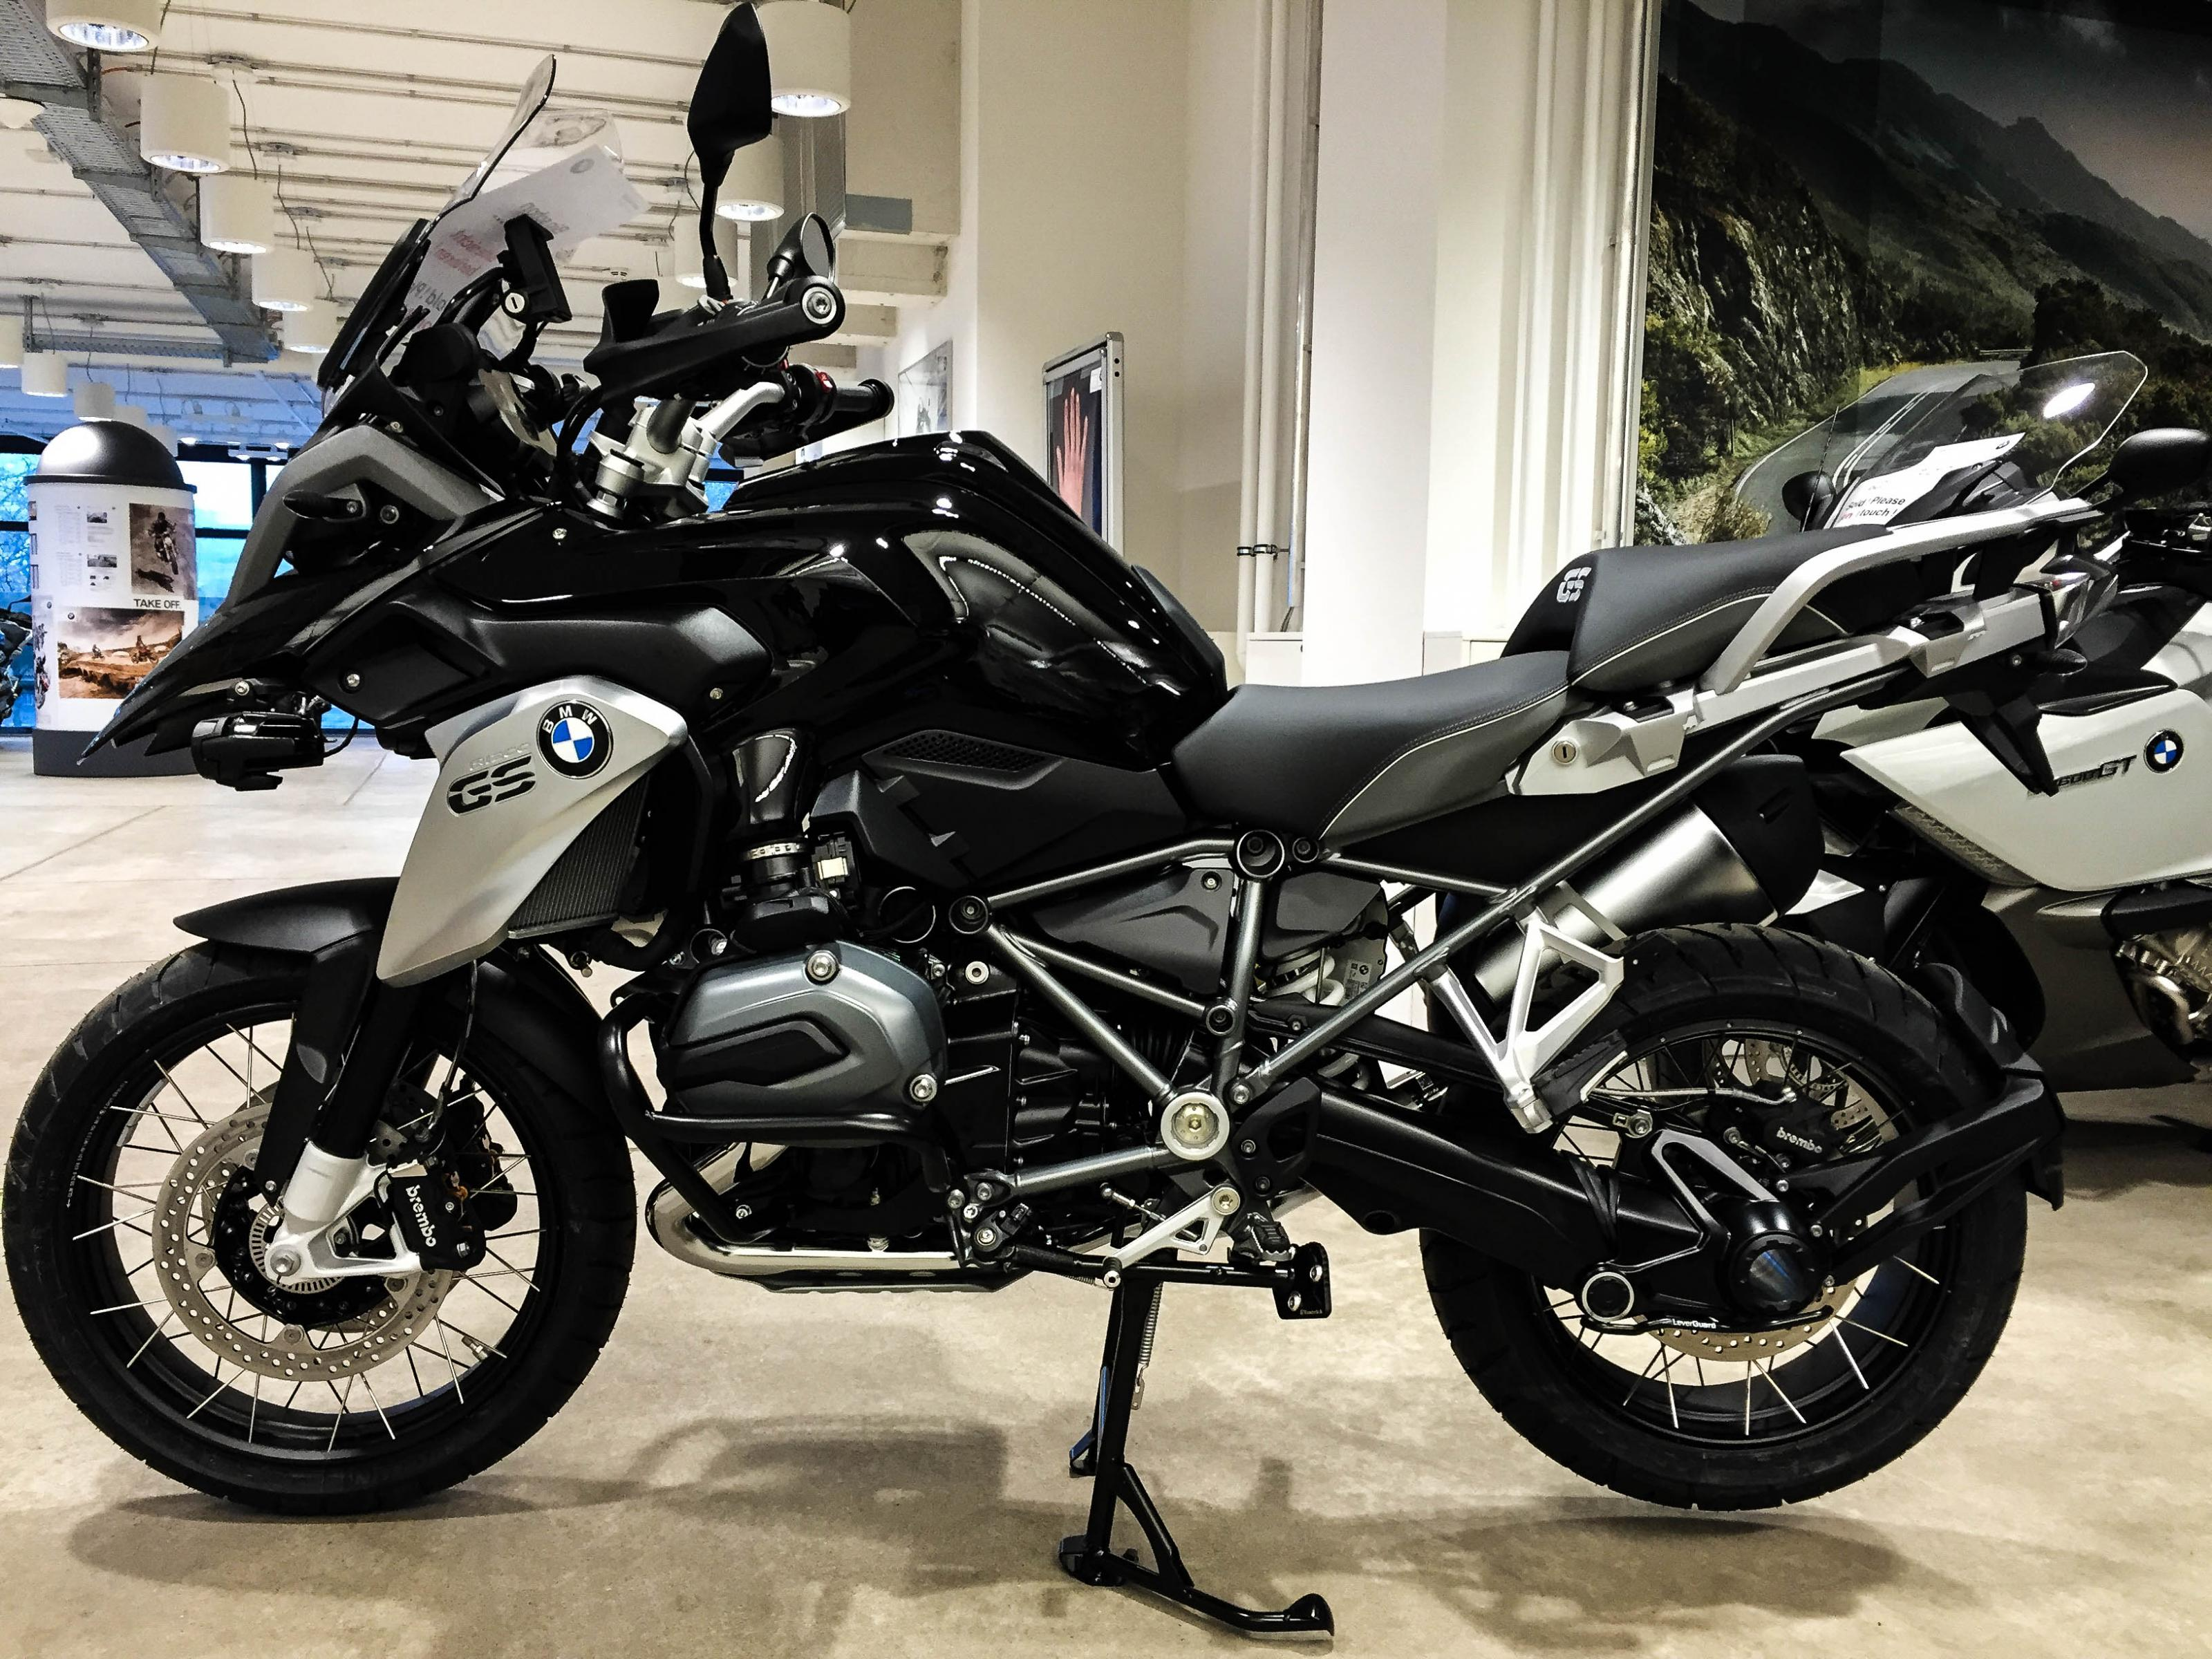 bmw r1200gs bmw model updates more tech more custom mcnews r1200st may be viable. Black Bedroom Furniture Sets. Home Design Ideas